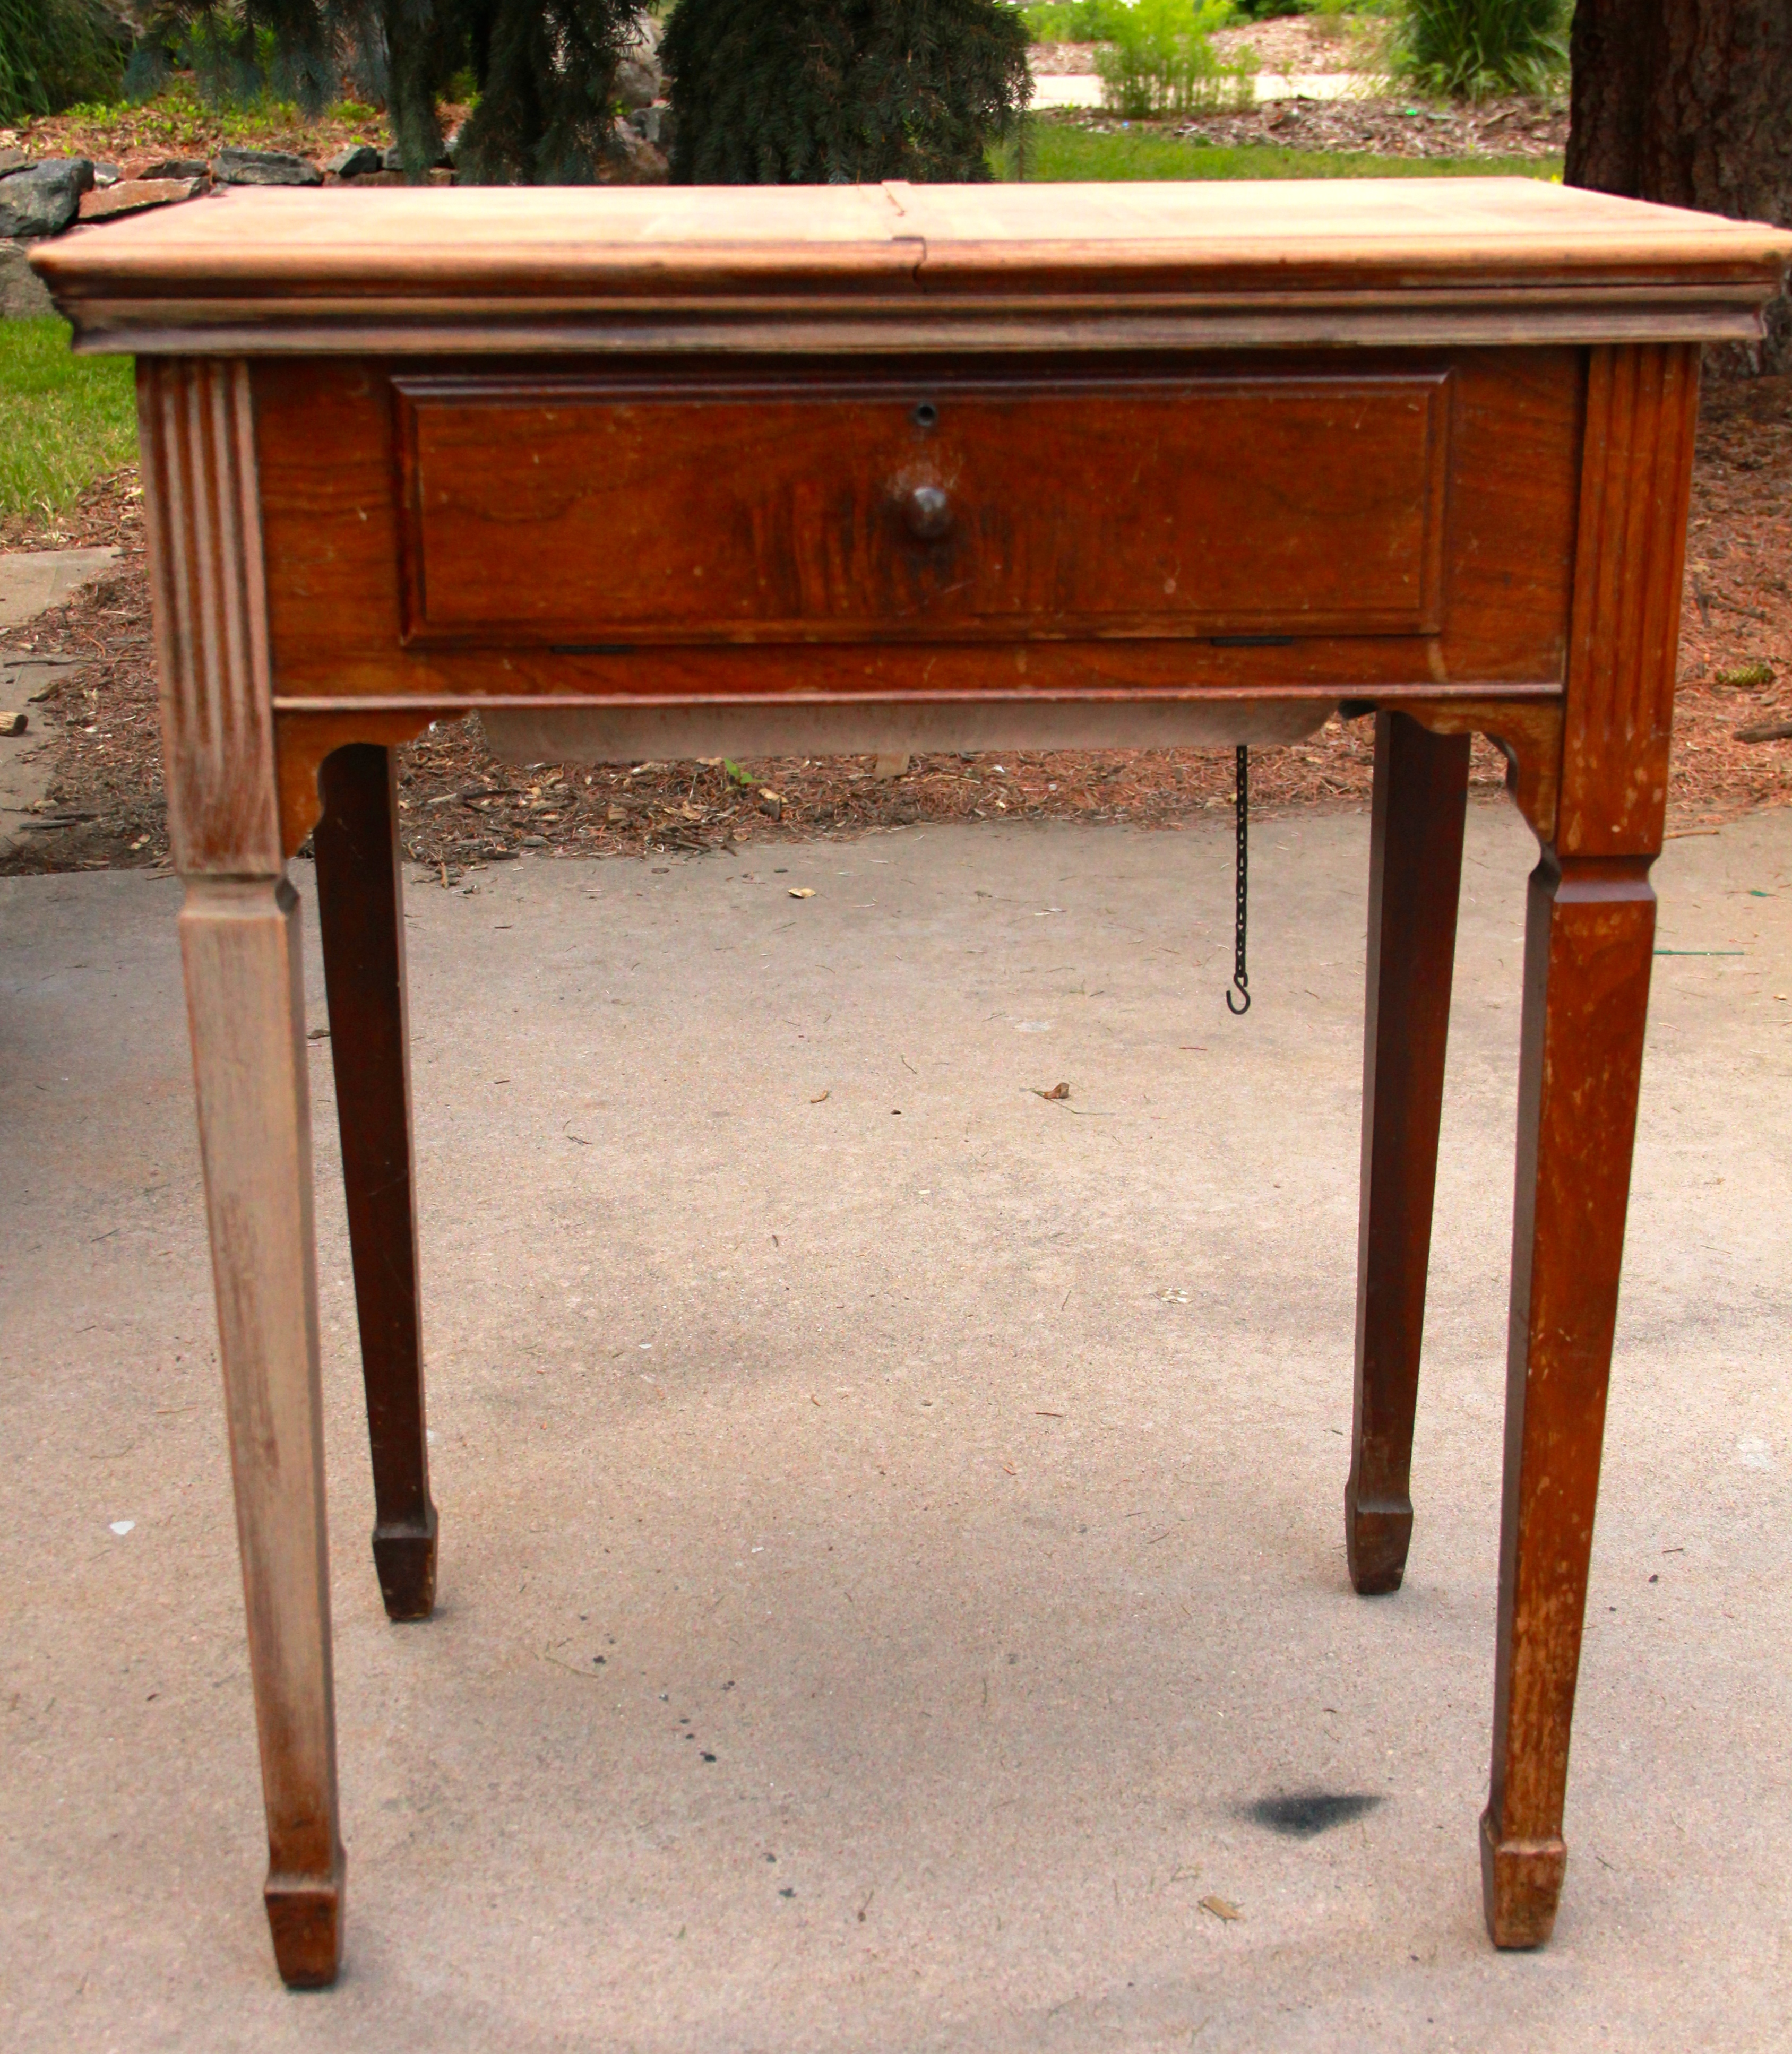 It Is Very Old, Very Water Damaged And Very Uniqueu2026.the Top Opens Up Down  The Middle Instead Of To One Side. This Is Perfect For A Small Desk Or  Entry Table ...